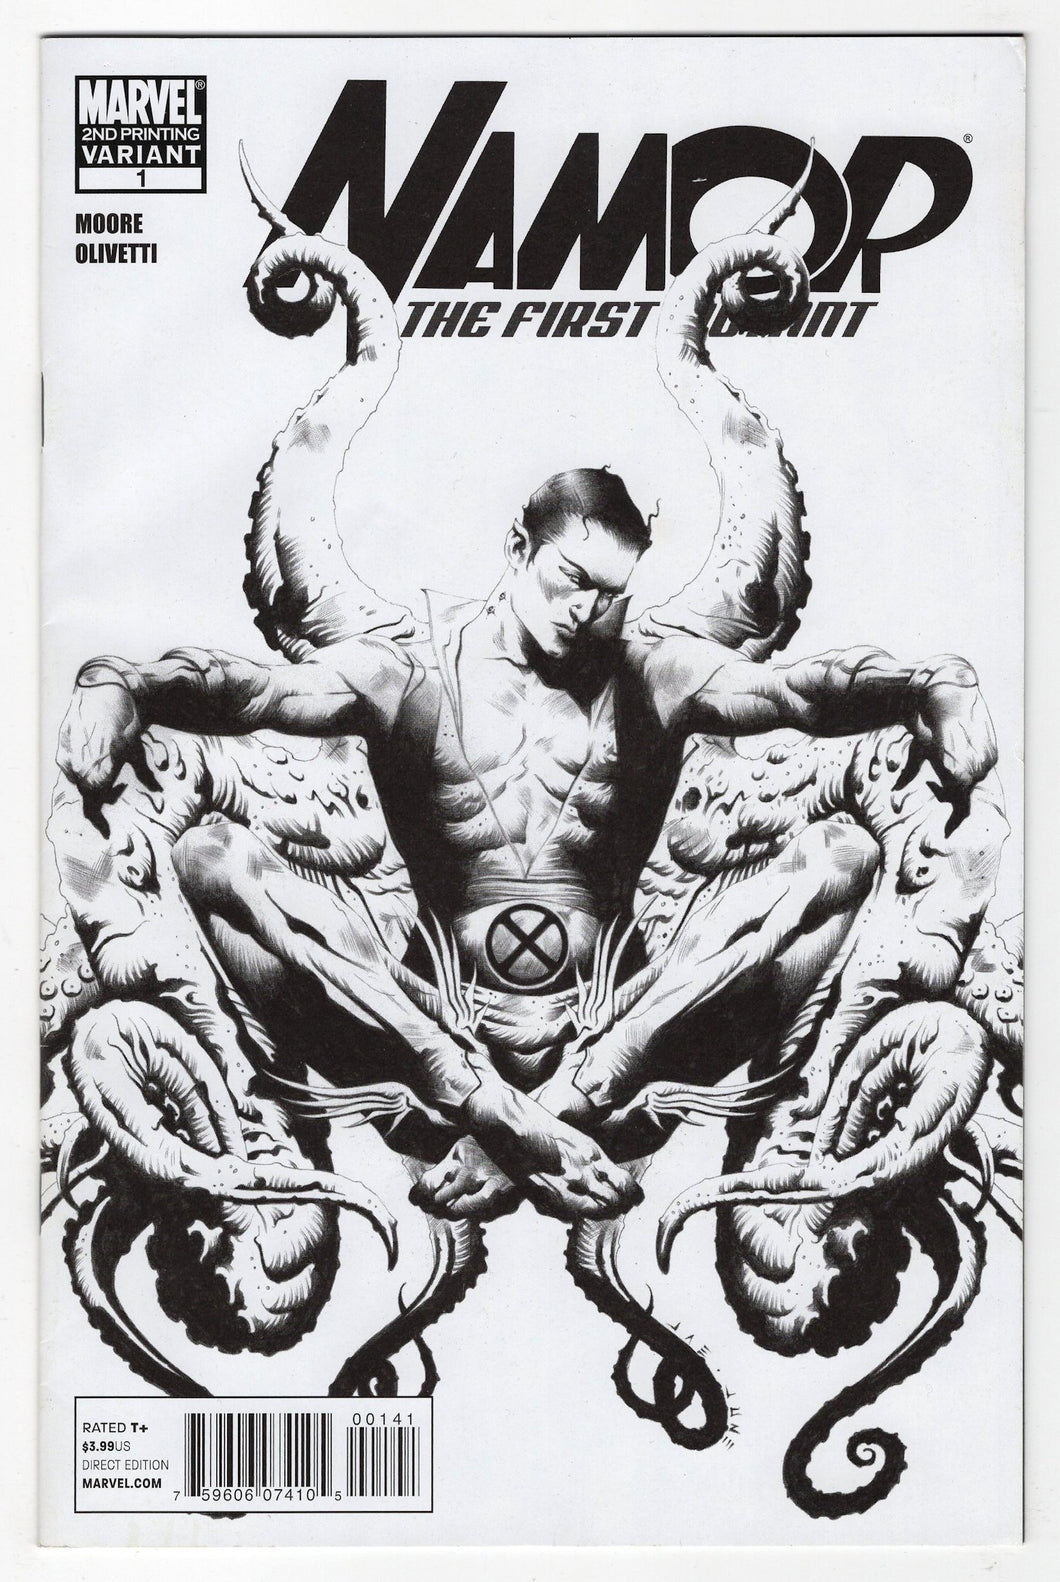 Namor First Mutant #1 2nd Print Variant Cover Front